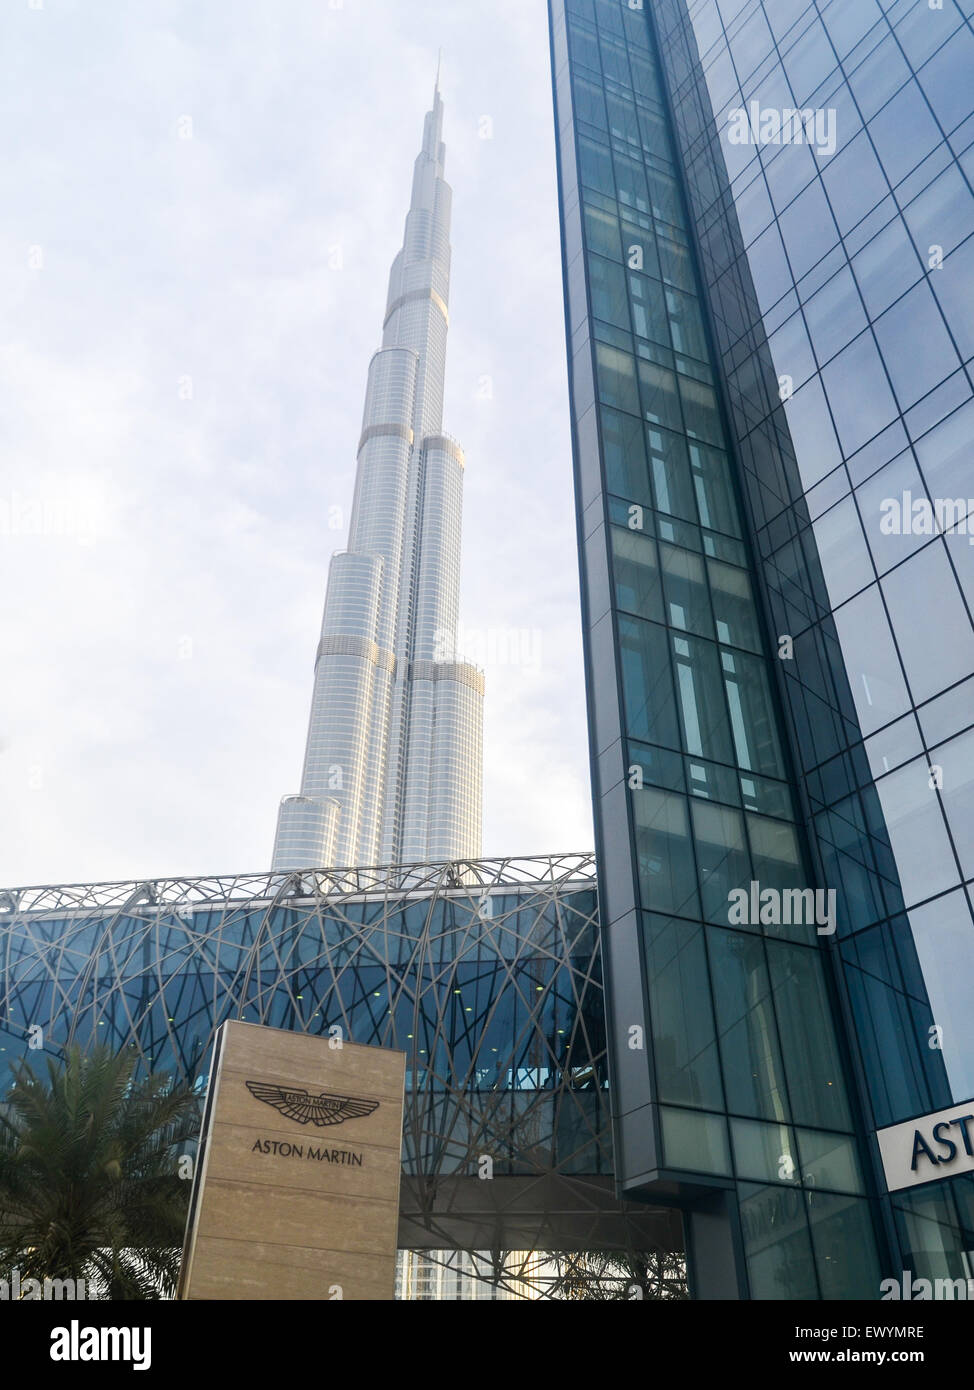 Burj Khalifa, the tallest building in the world in 2015, standing up in Dubai, behind the Aston Martin distributor - Stock Image